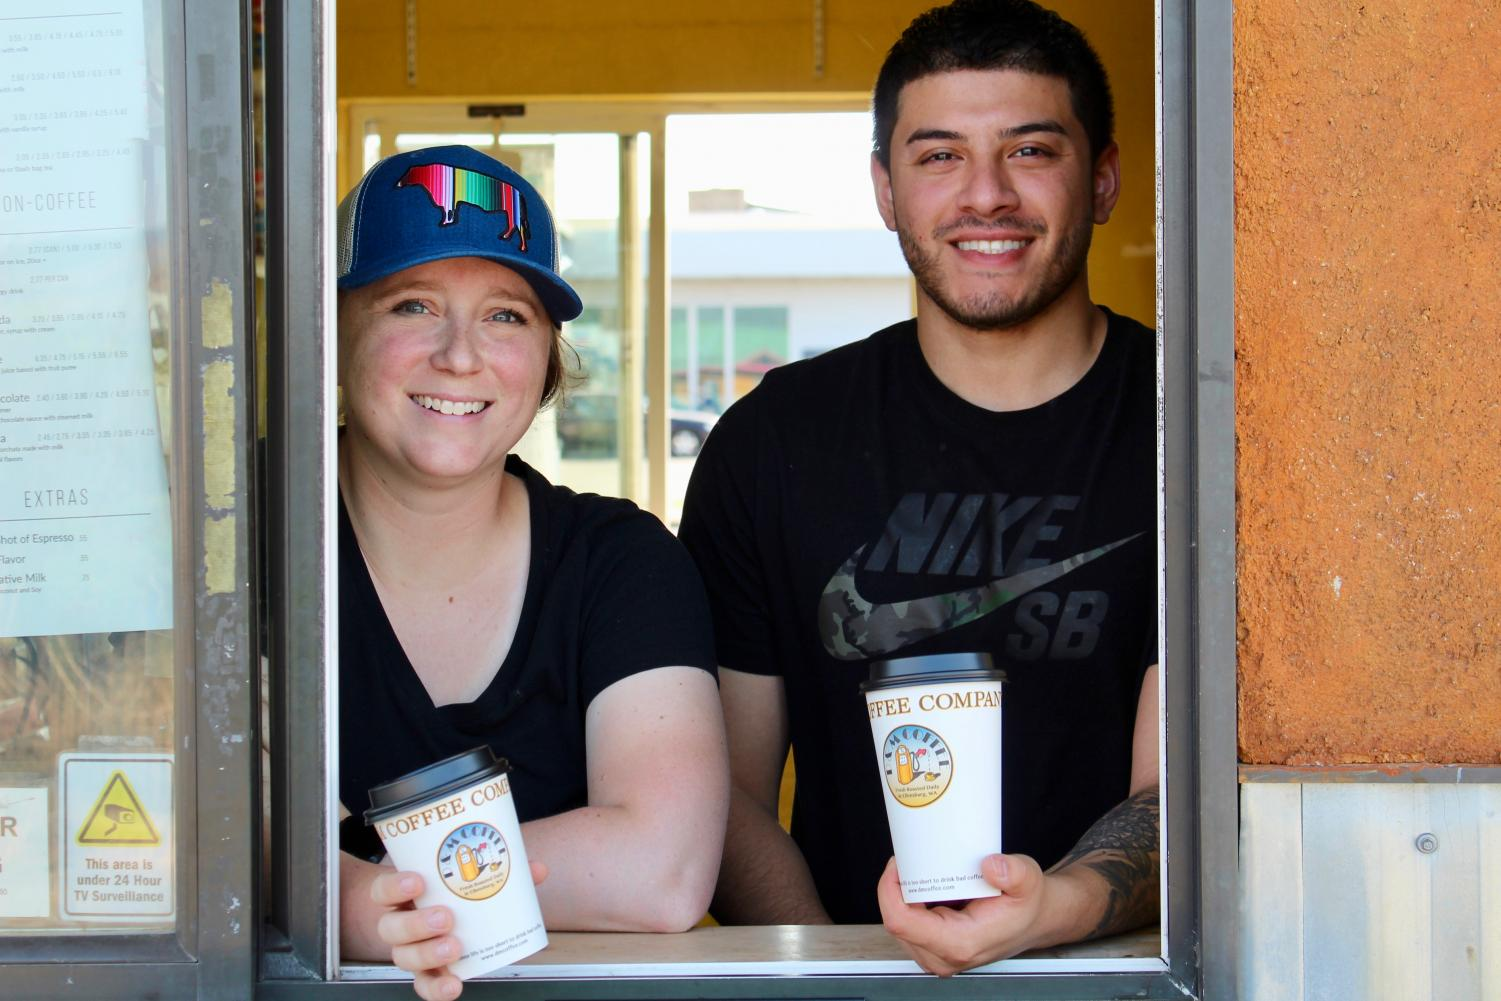 Students have emplyment opportunities both on and off campus during summer. Marketing and supply chain major Kate Dustrude and social work major Isaac Saldana are CWU students who will continue working at D&M coffee over the summer.